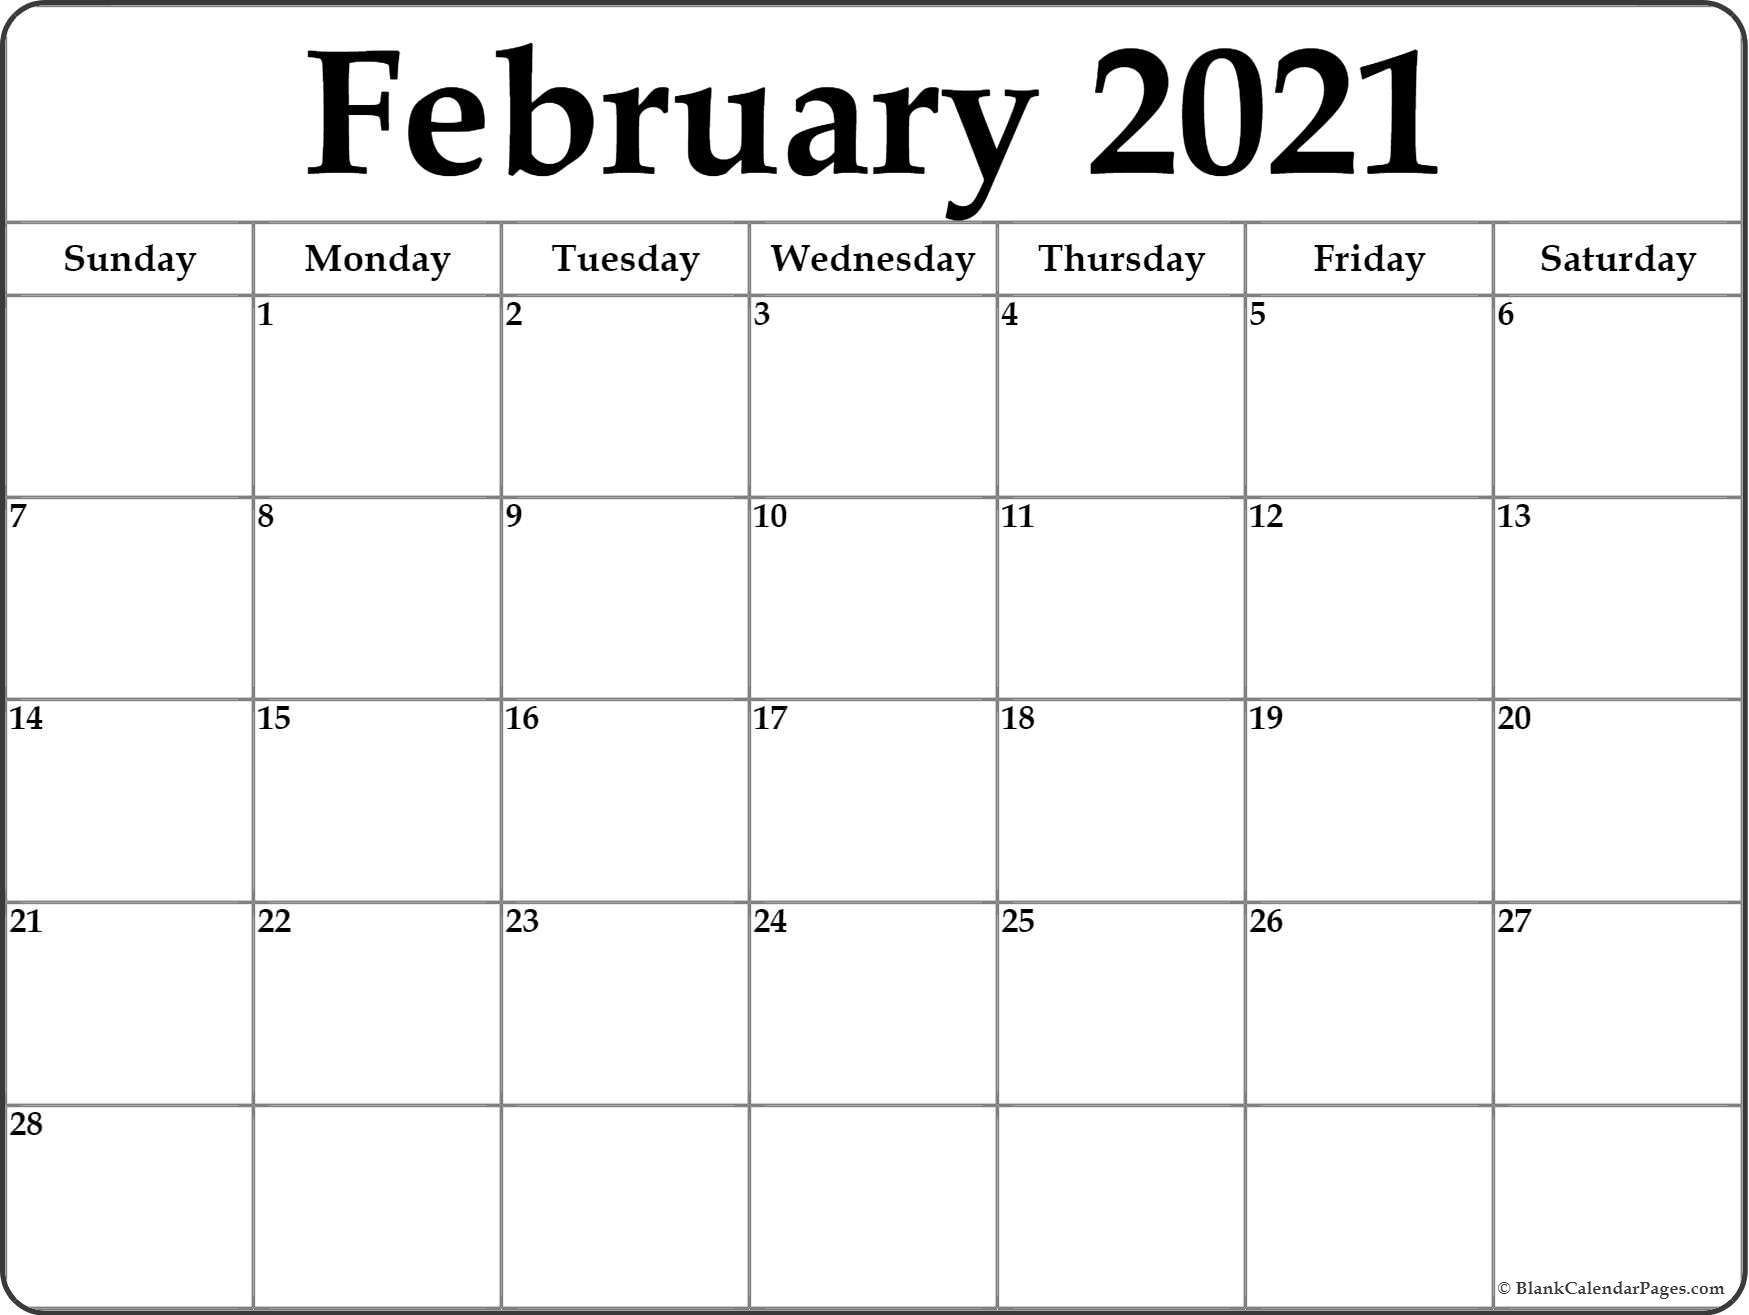 February 2021 Calendar | Free Printable Monthly Calendars  Summer Months 2021 Calendar